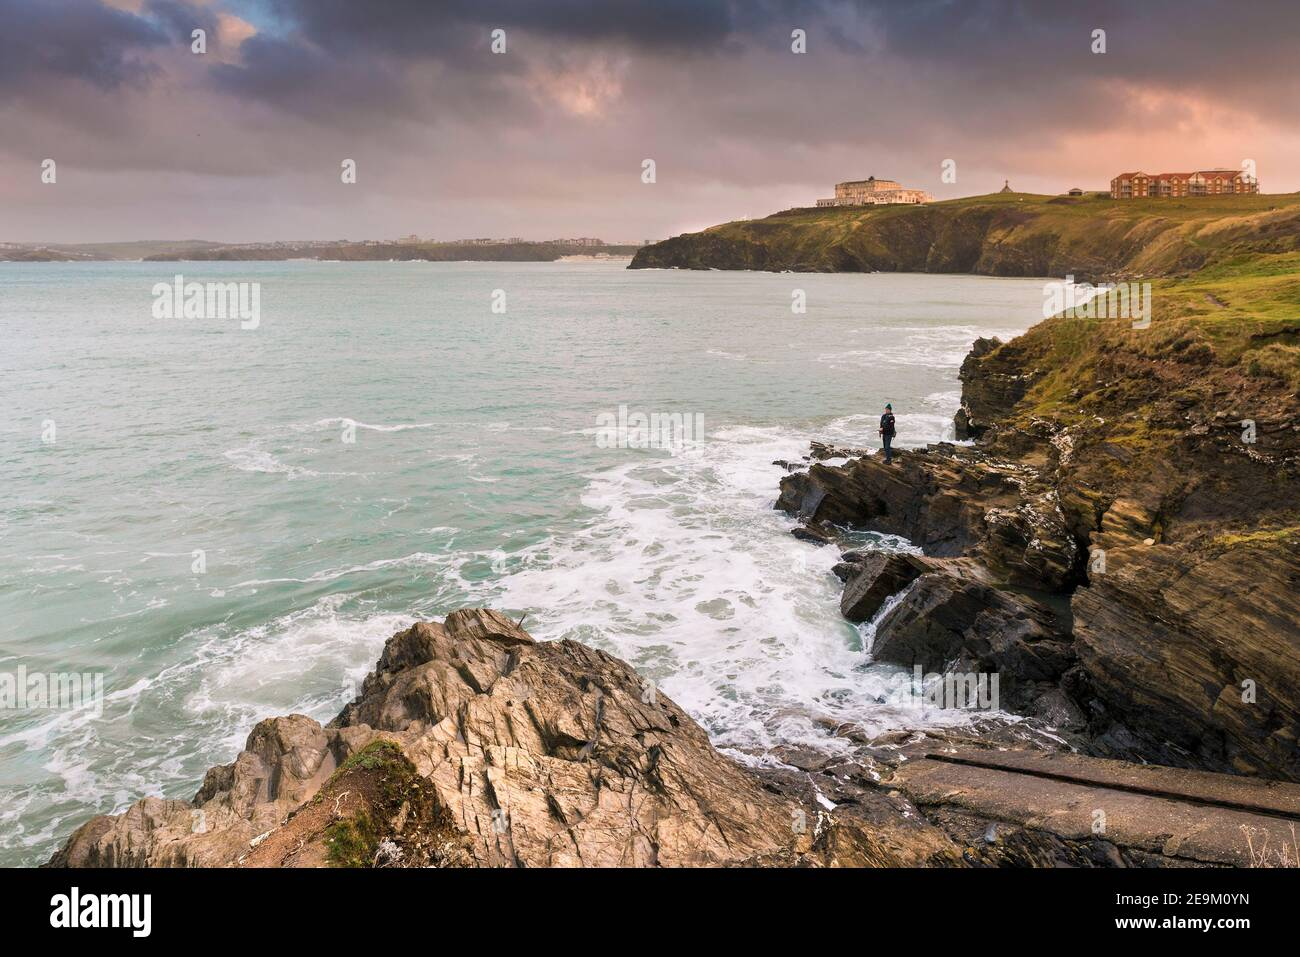 Warm evening light over an angler fishing off rocks on the coastline of Newquay Bay in Cornwall. Stock Photo